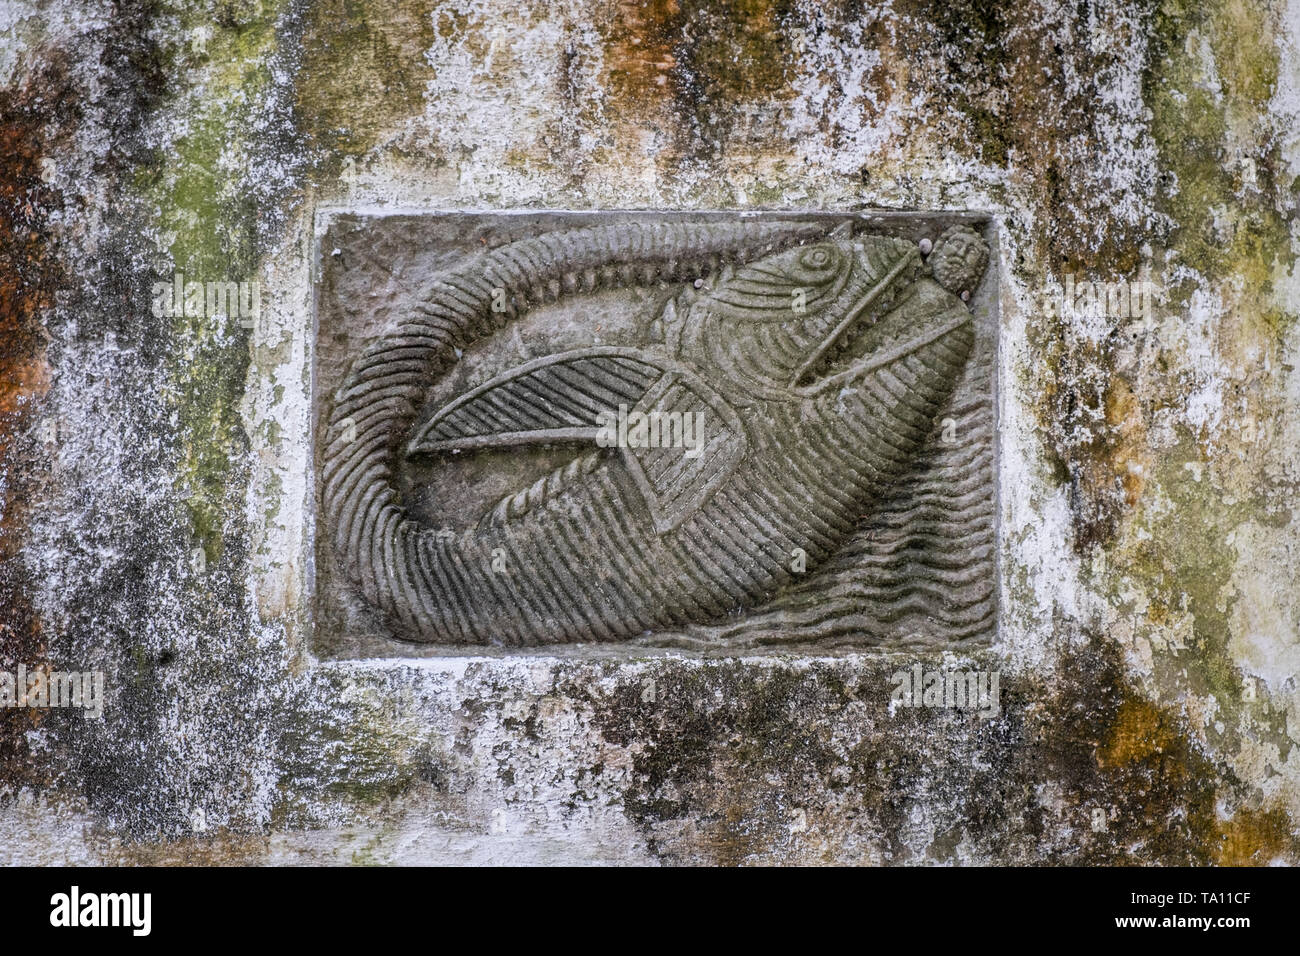 Primitive Catholic art a bas relief carving of Jonah being swallowed by a whale carved on a stone wall in Amalfi Campania Italy - Stock Image